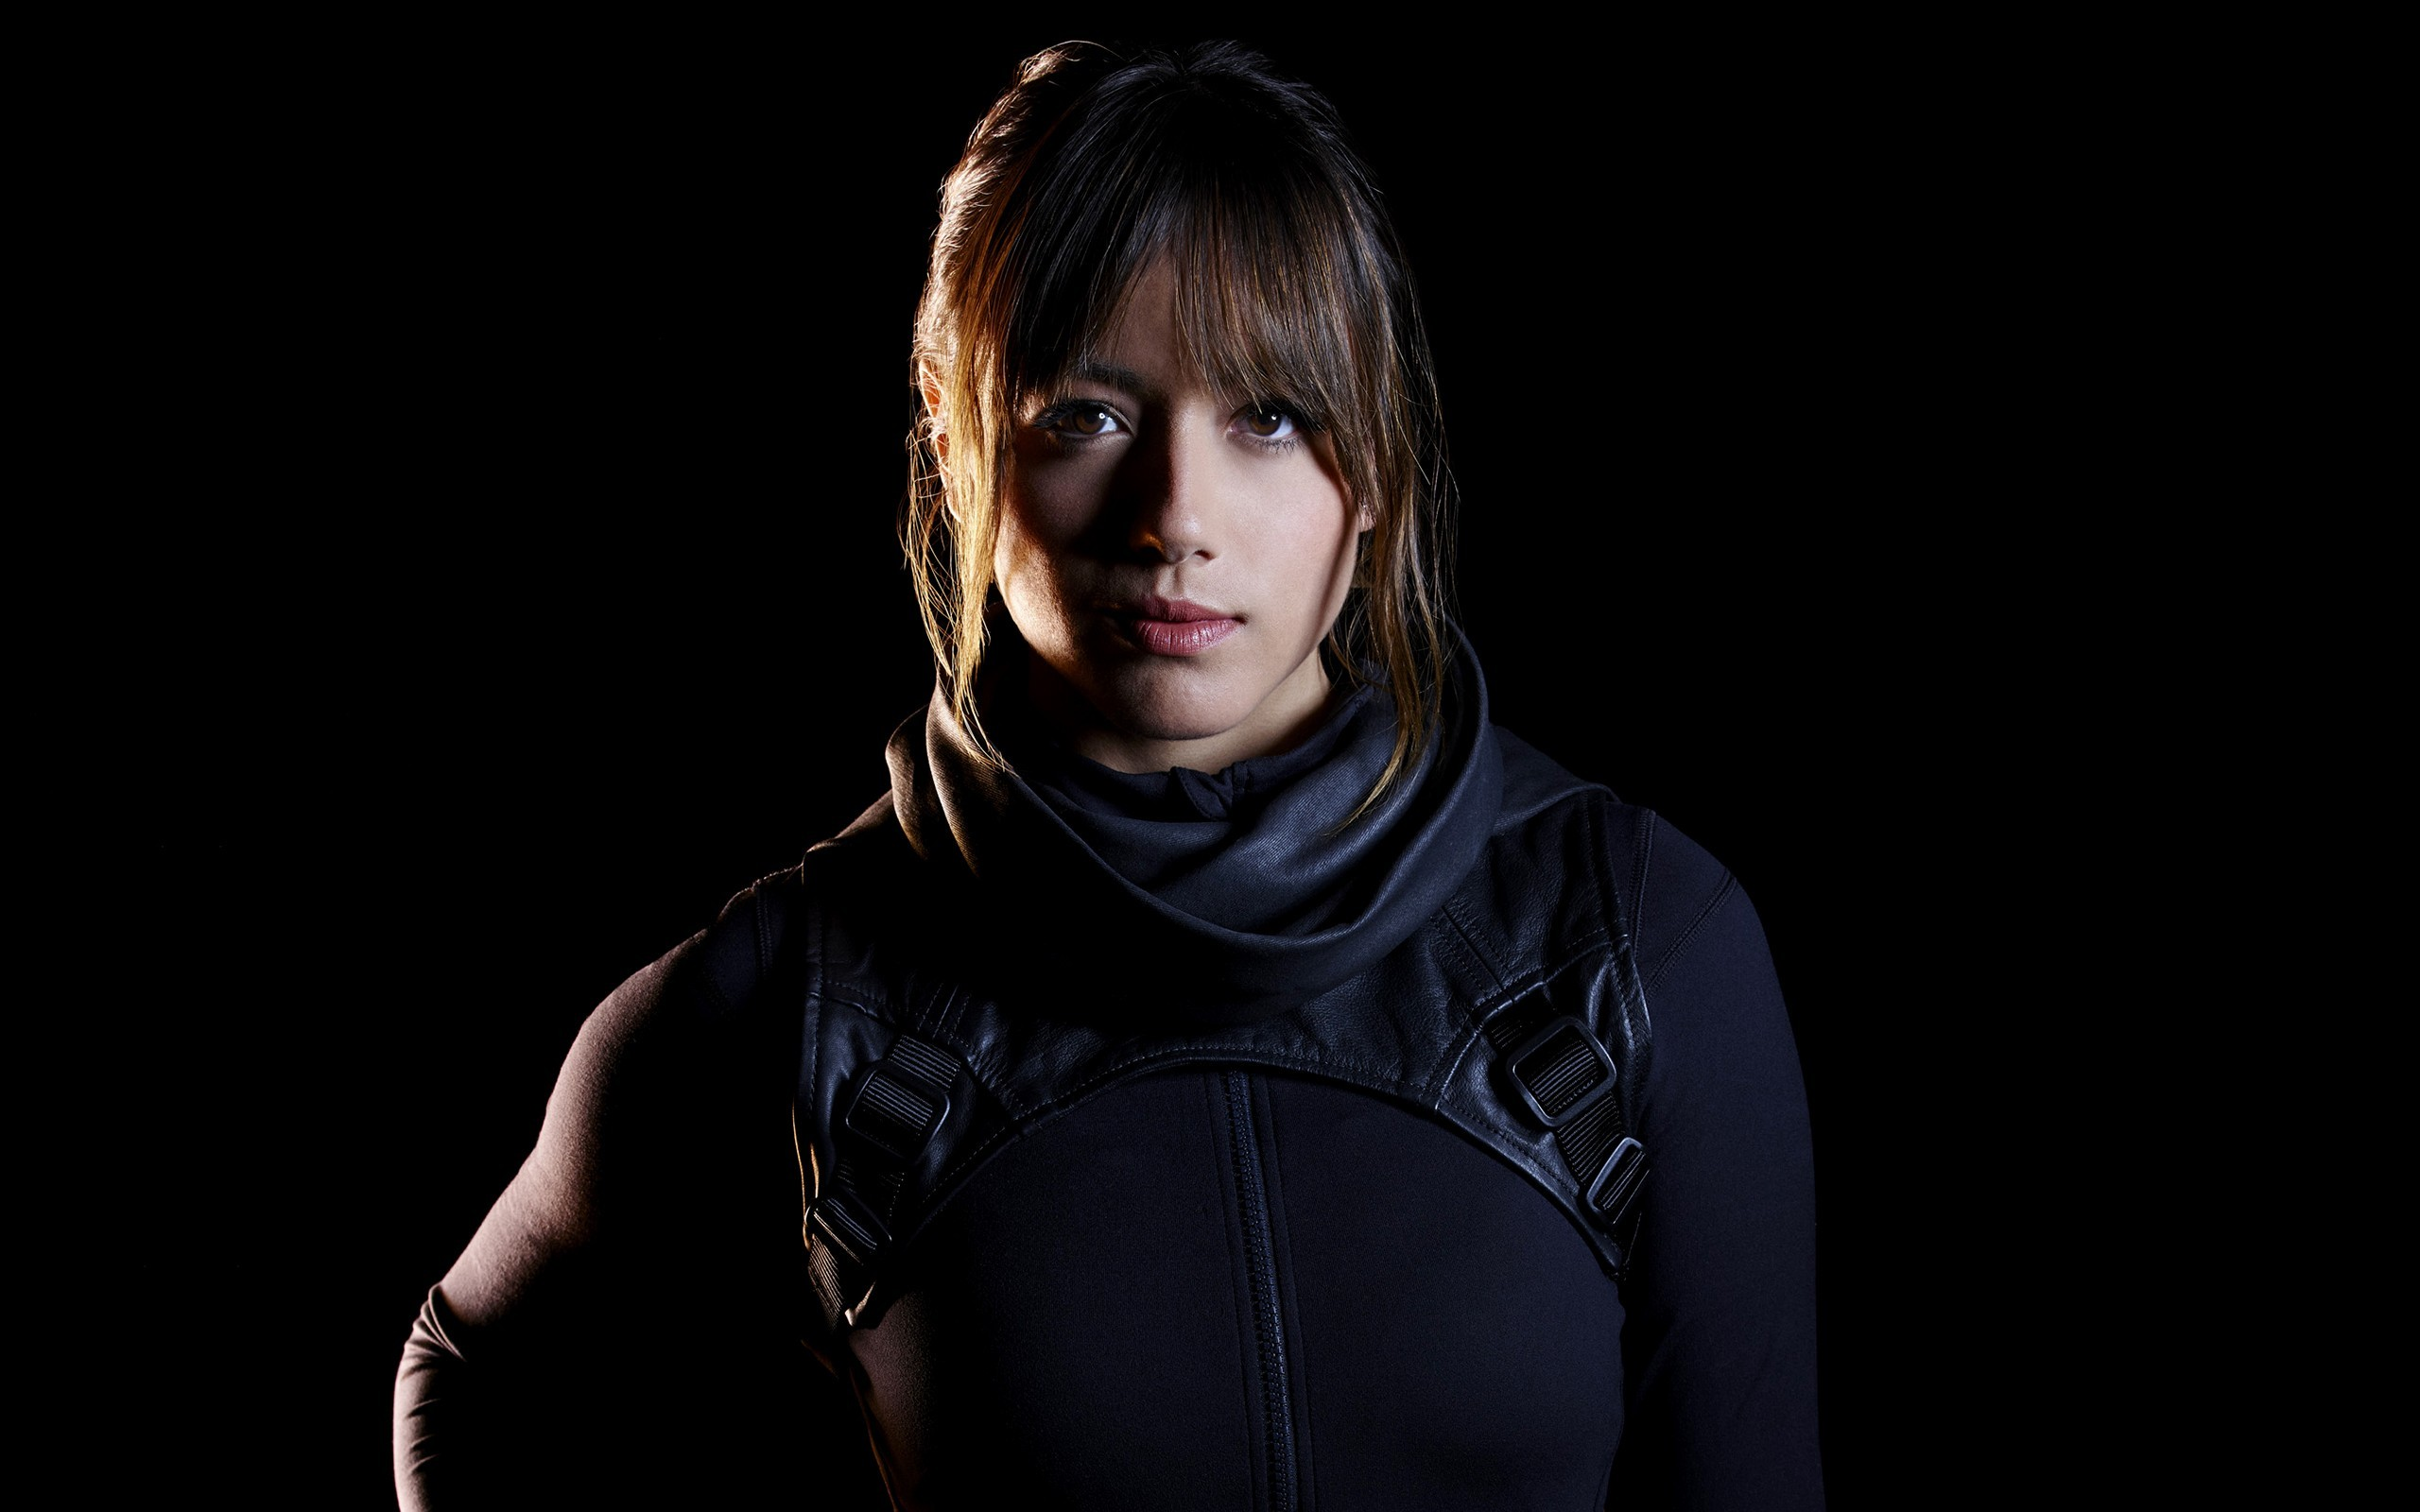 2560x1600 TV Series / Daisy Johnson Wallpaper